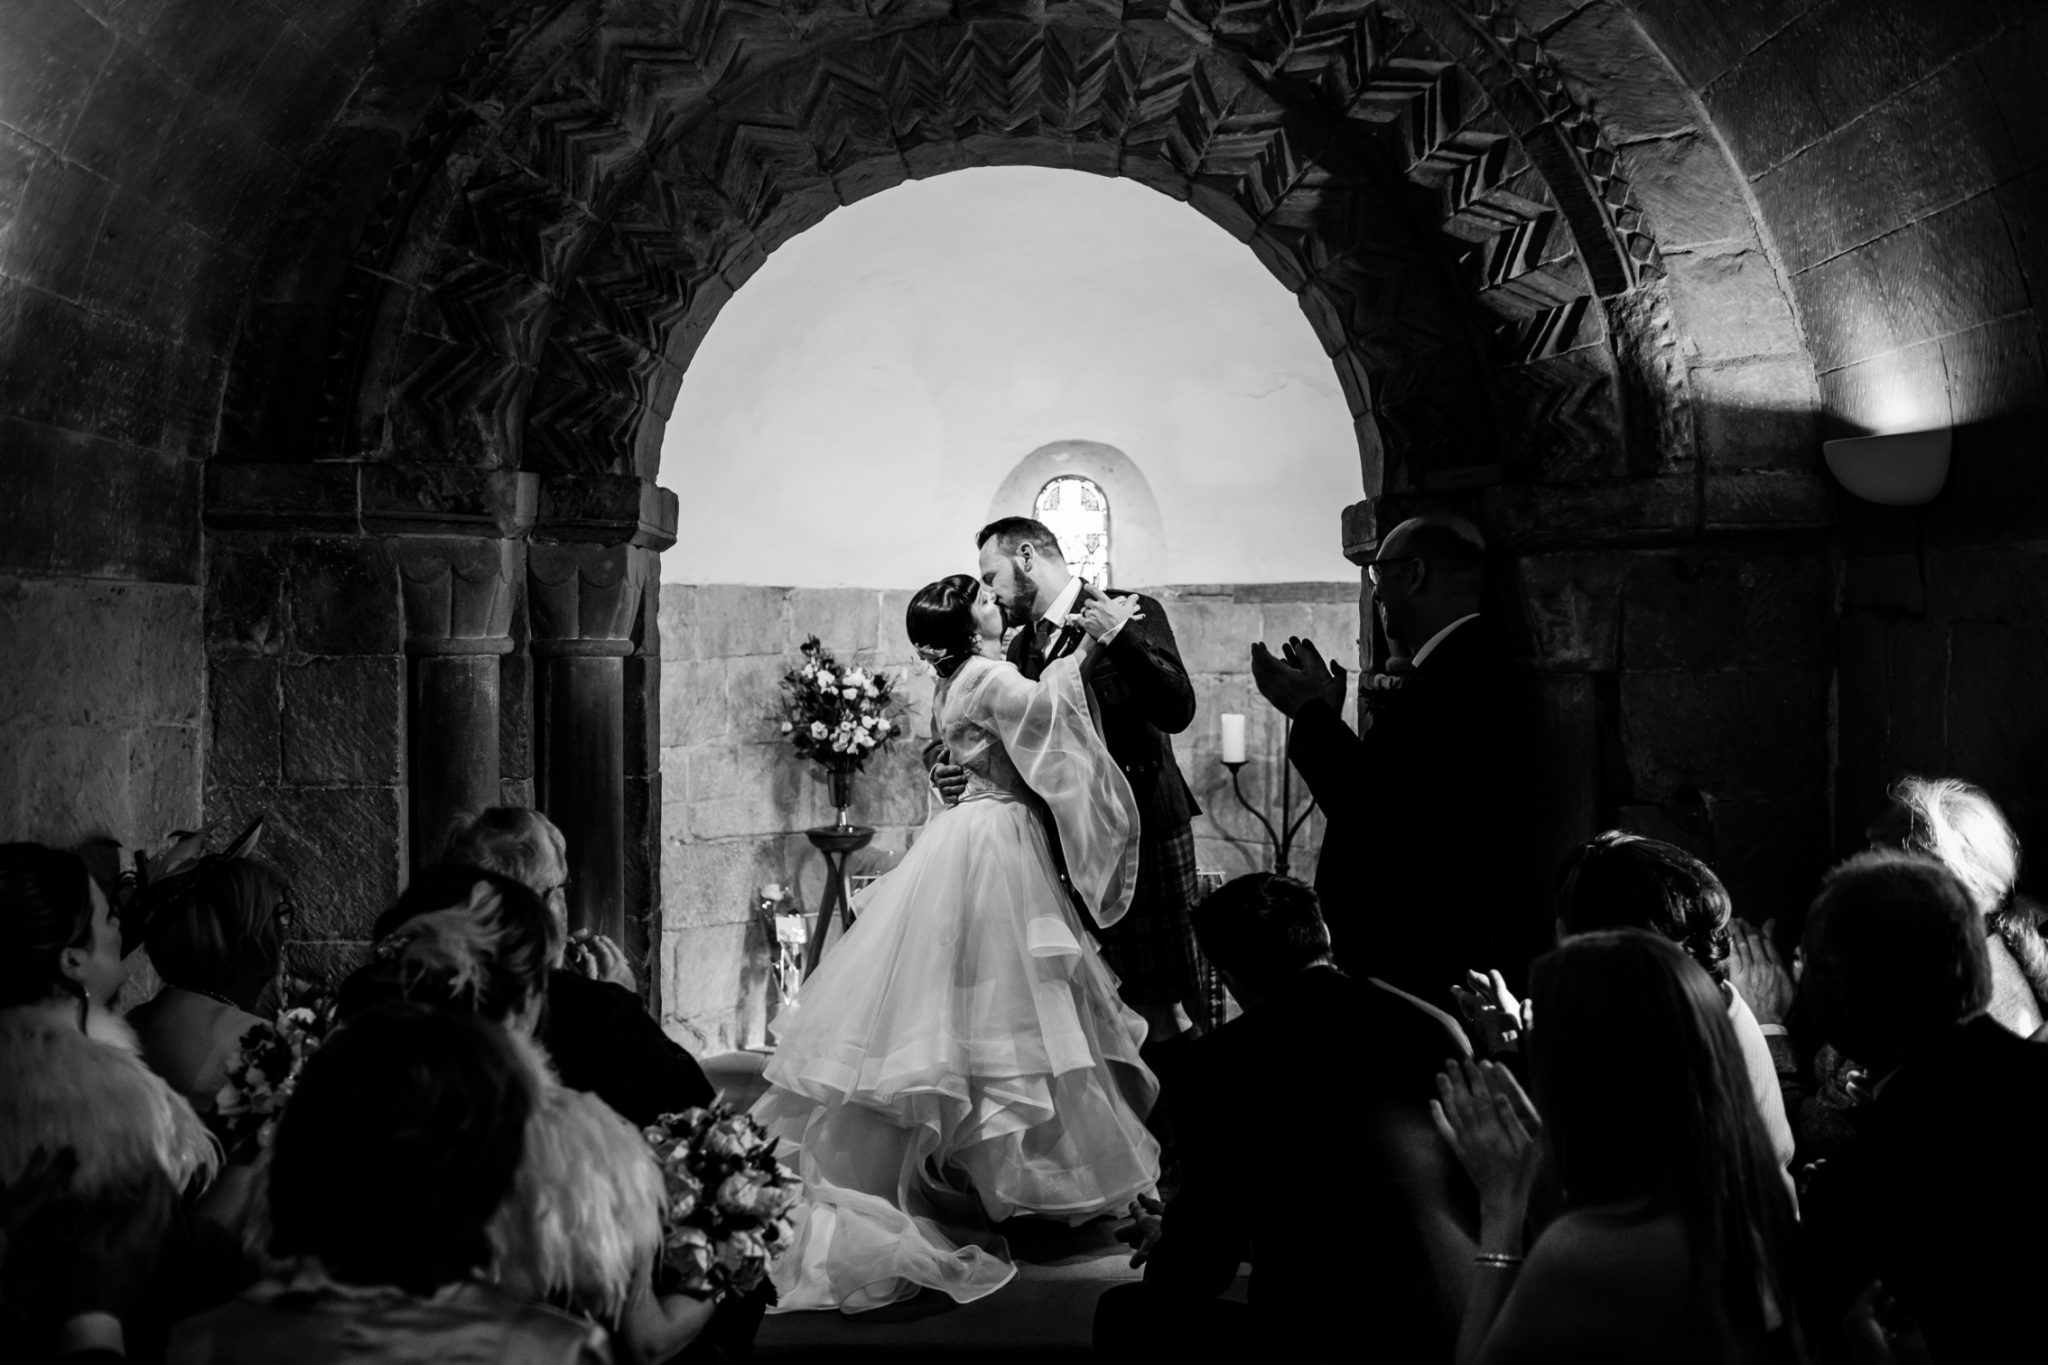 Unique Wedding Venues- Unconventional Wedding- Lina & Tom Photography- Wedding Ceremony in Castle